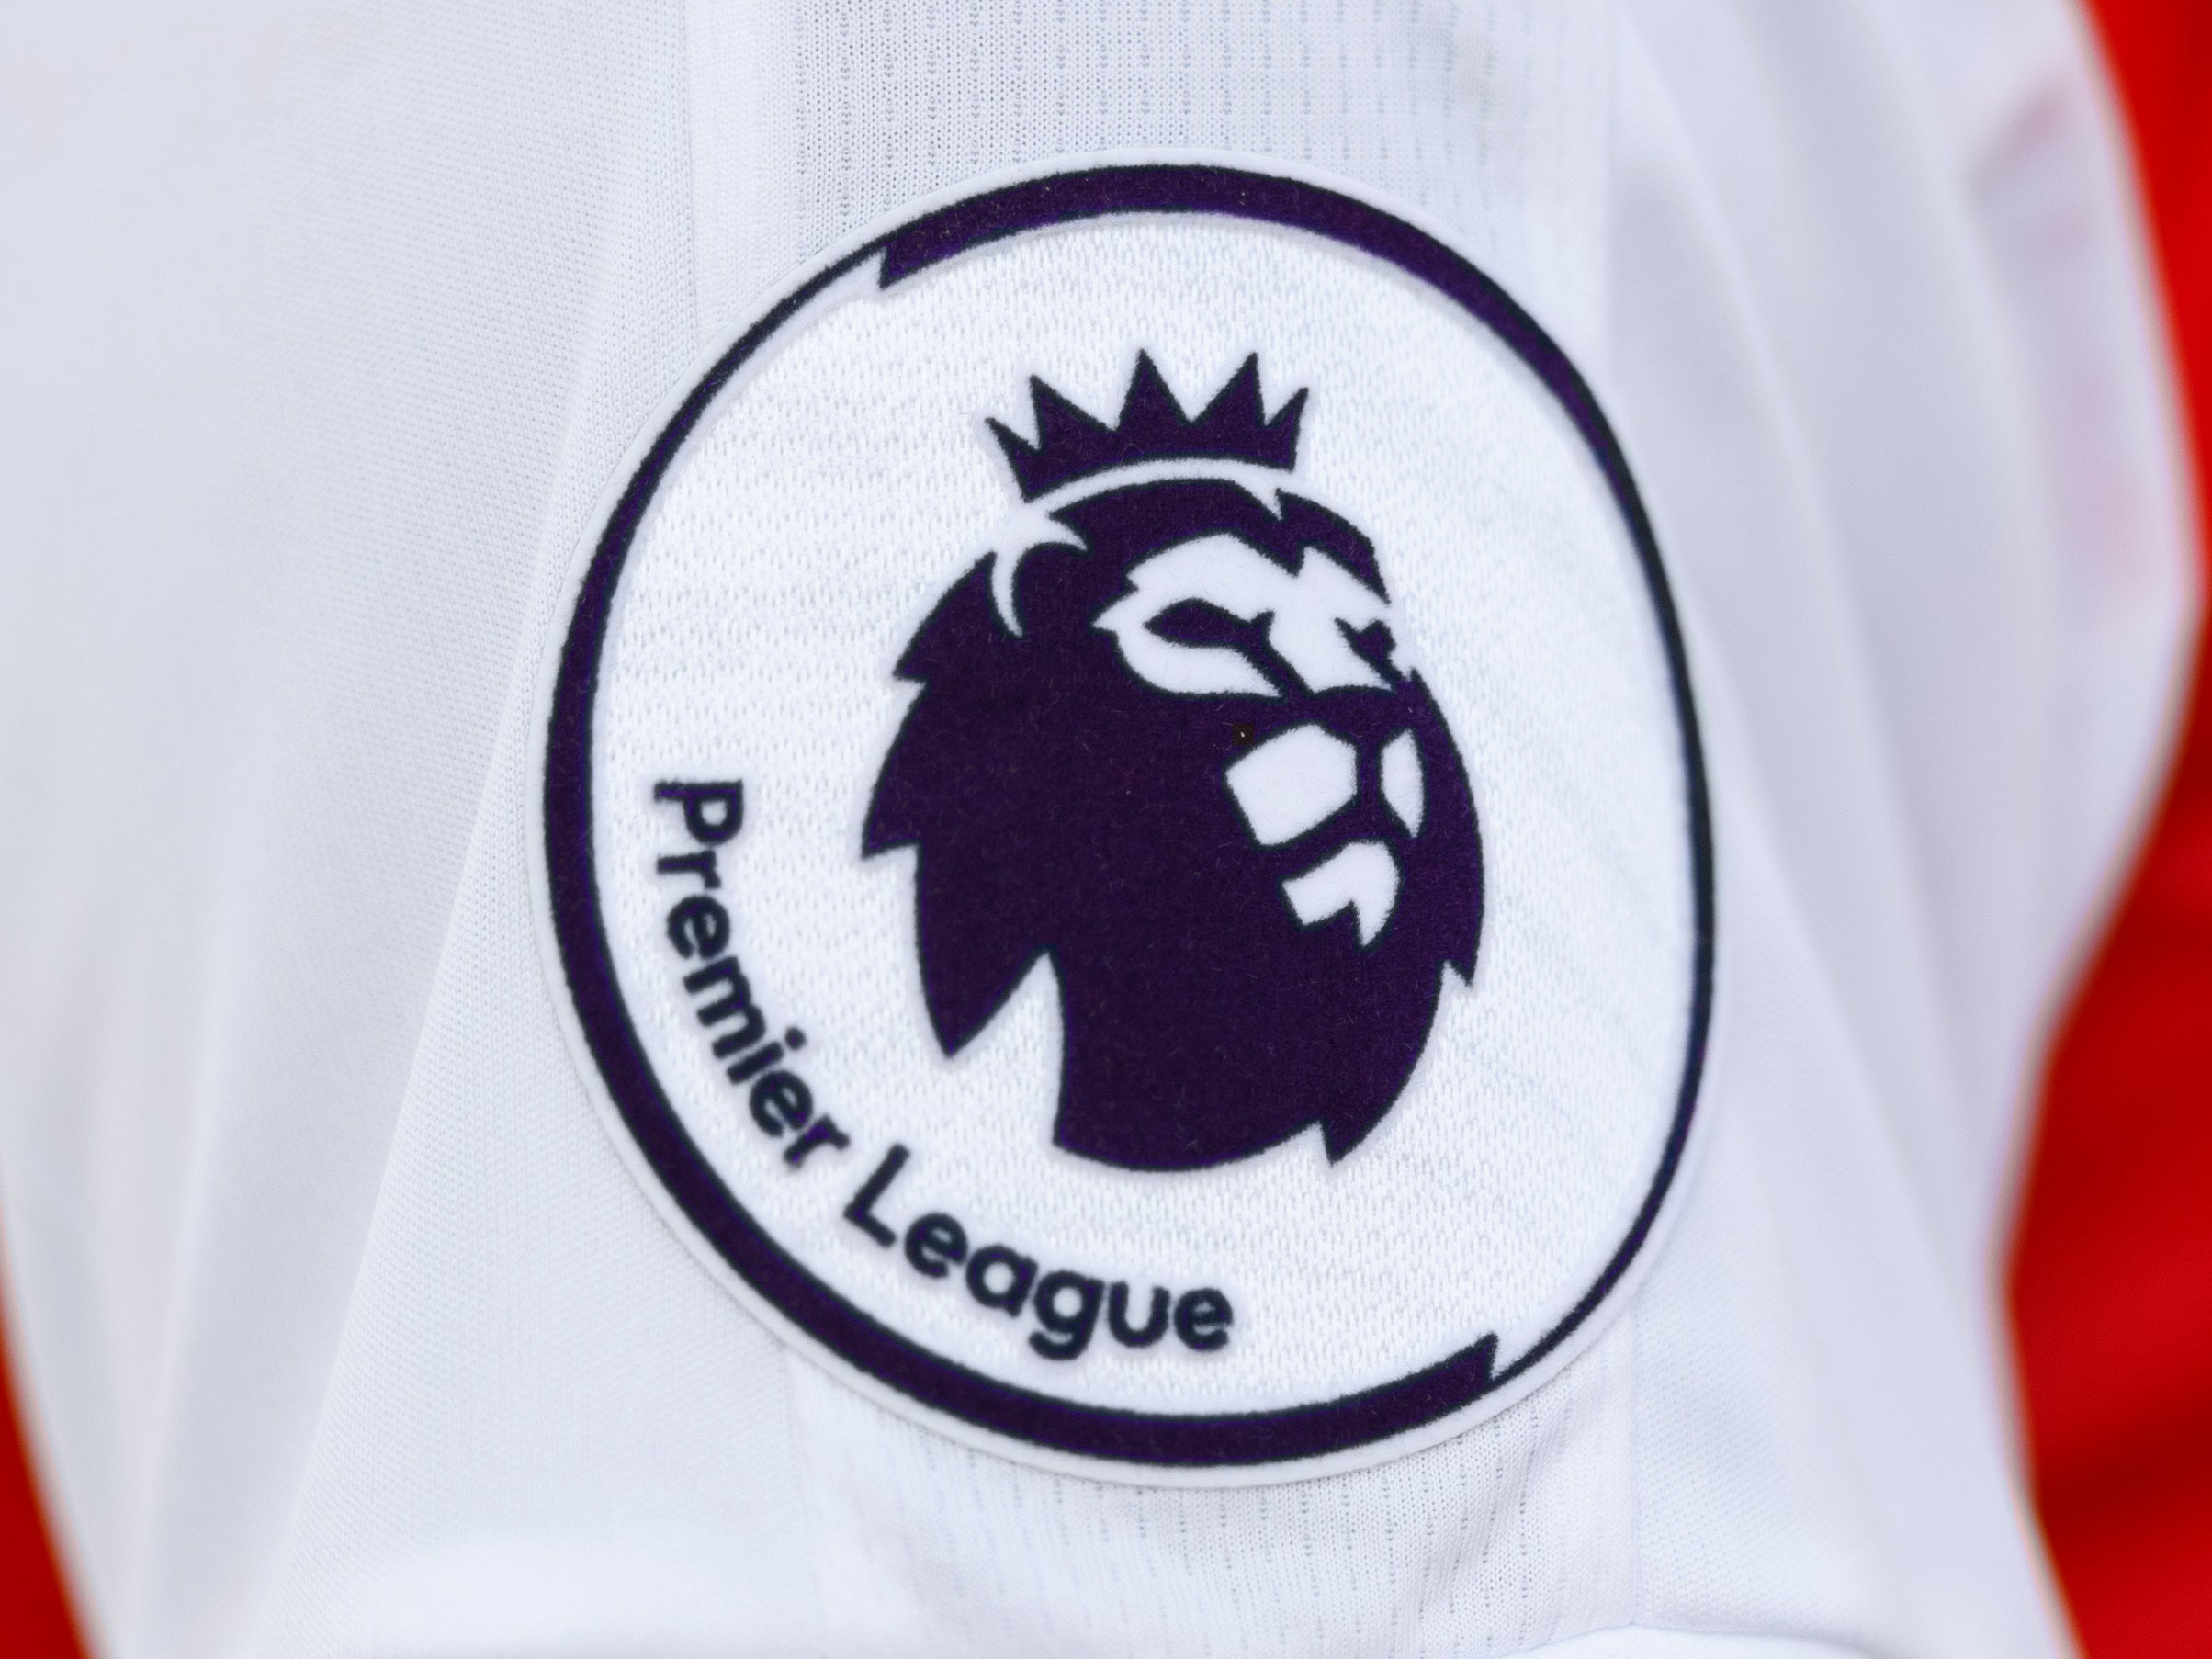 Premier League clubs given green light to play friendlies, say reports